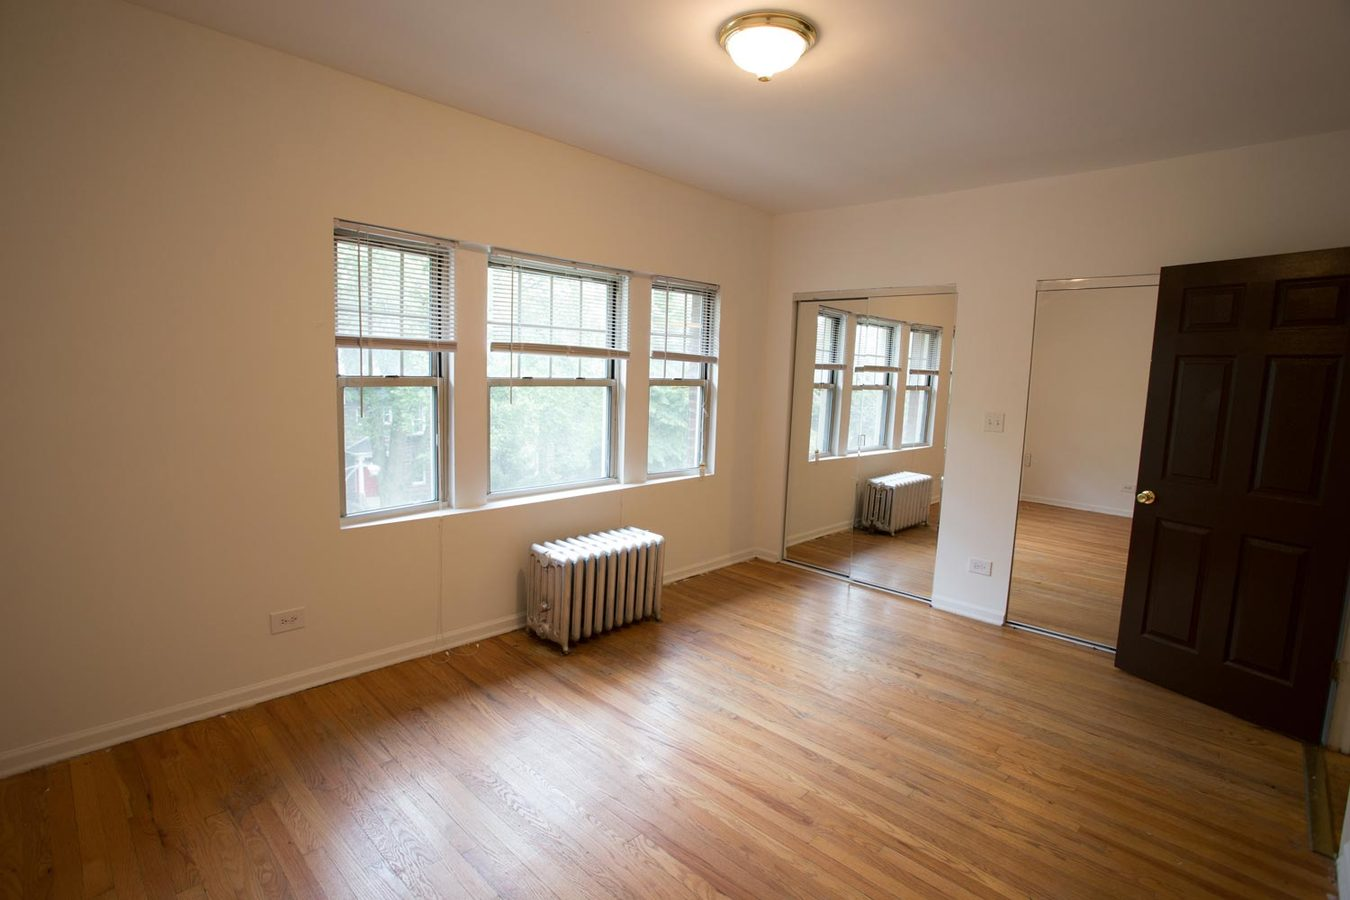 1 Bedroom 1 Bathroom Apartment for rent at 5528 S. Cornell Avenue in Chicago, IL